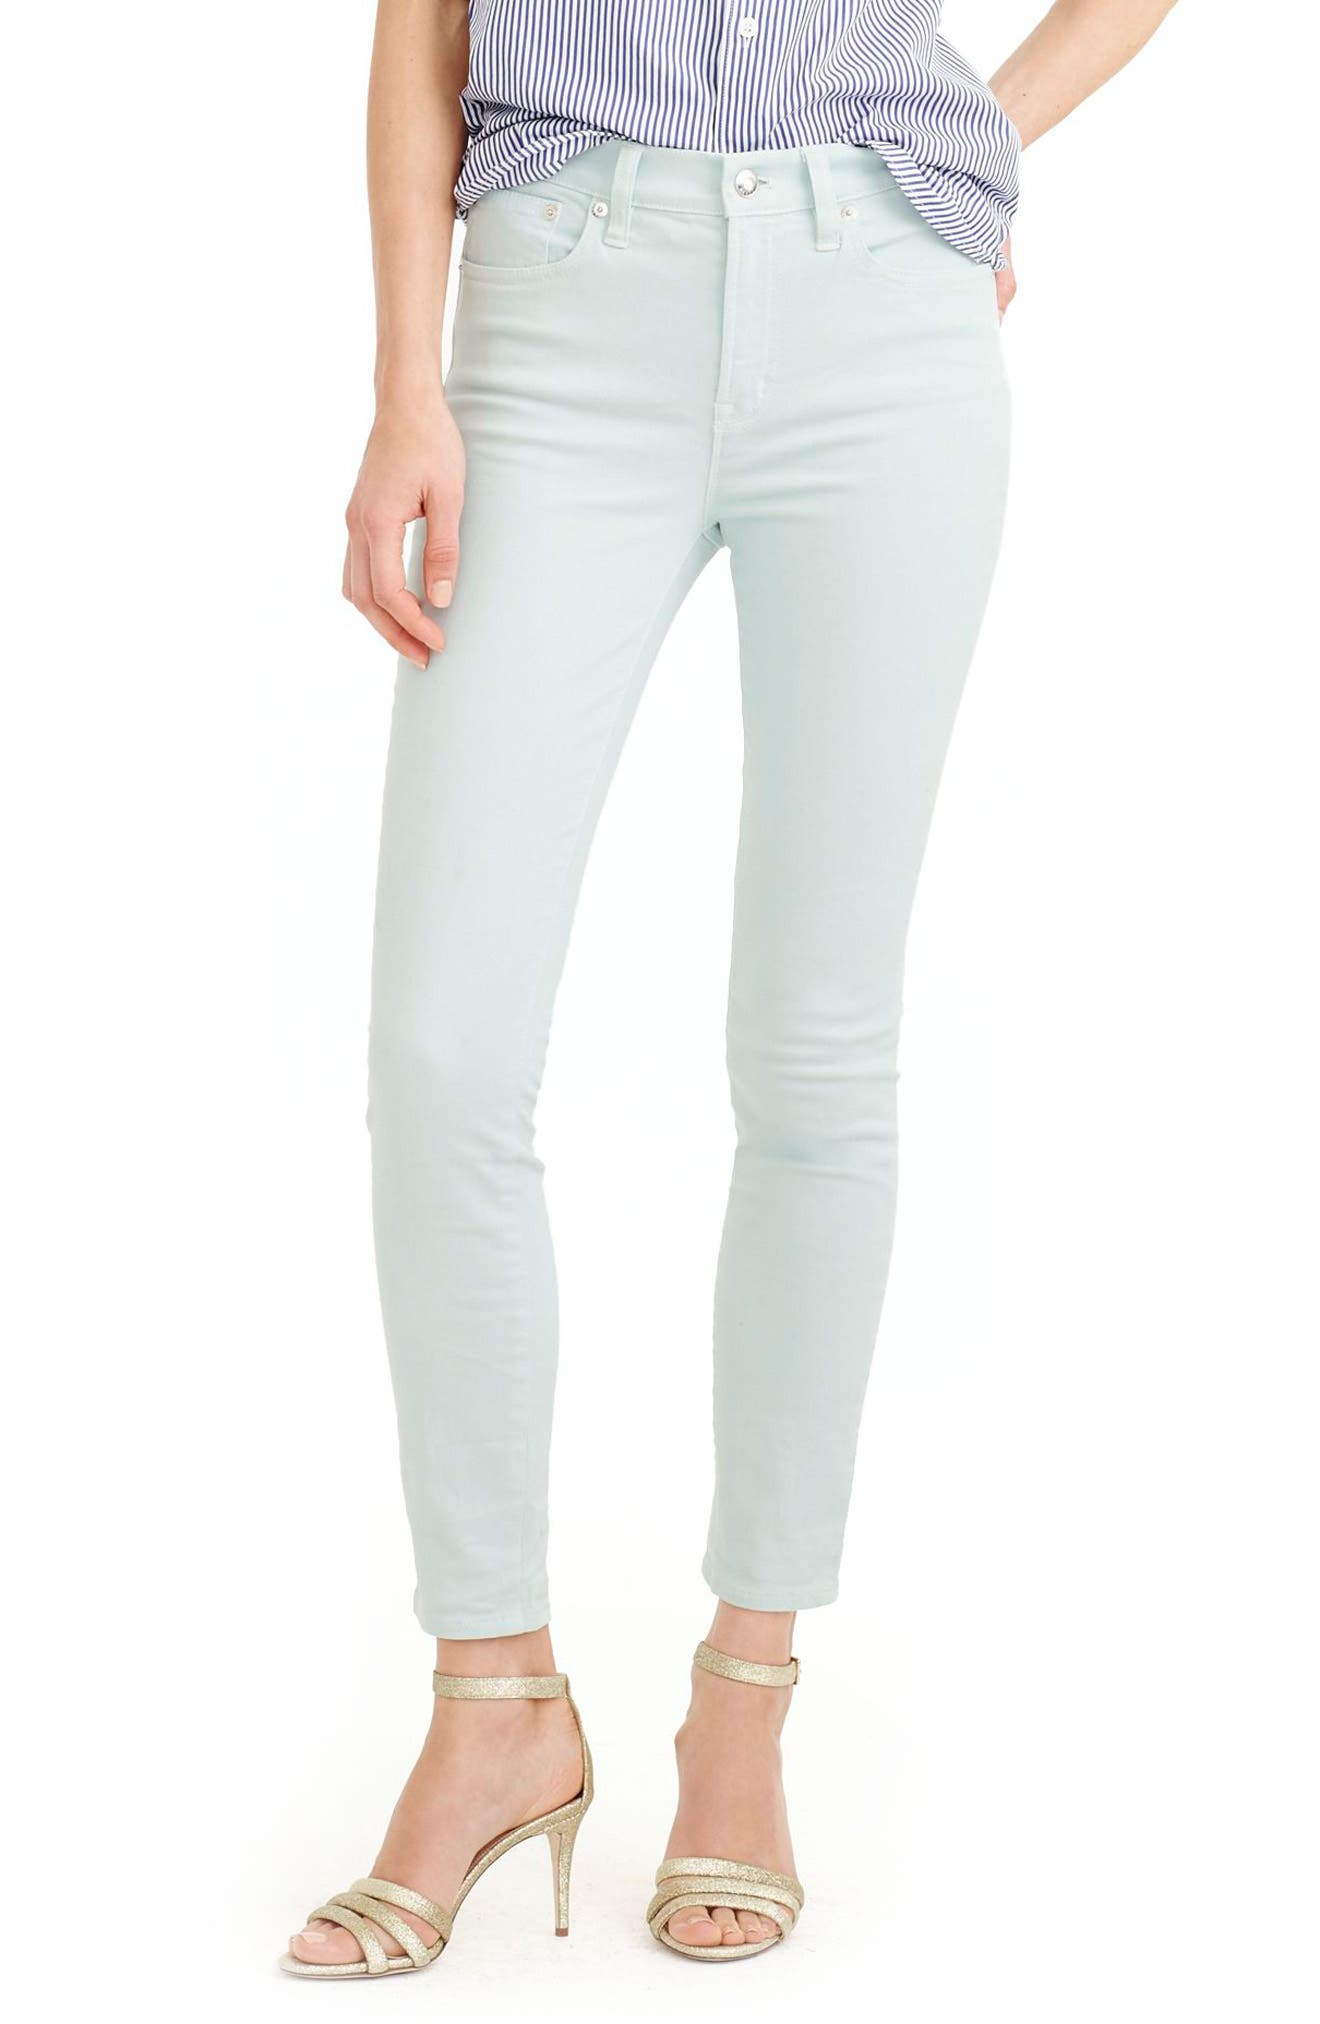 Alternate Image 1 Selected - J.Crew Lookout High Waist Garment Dyed Crop Jeans